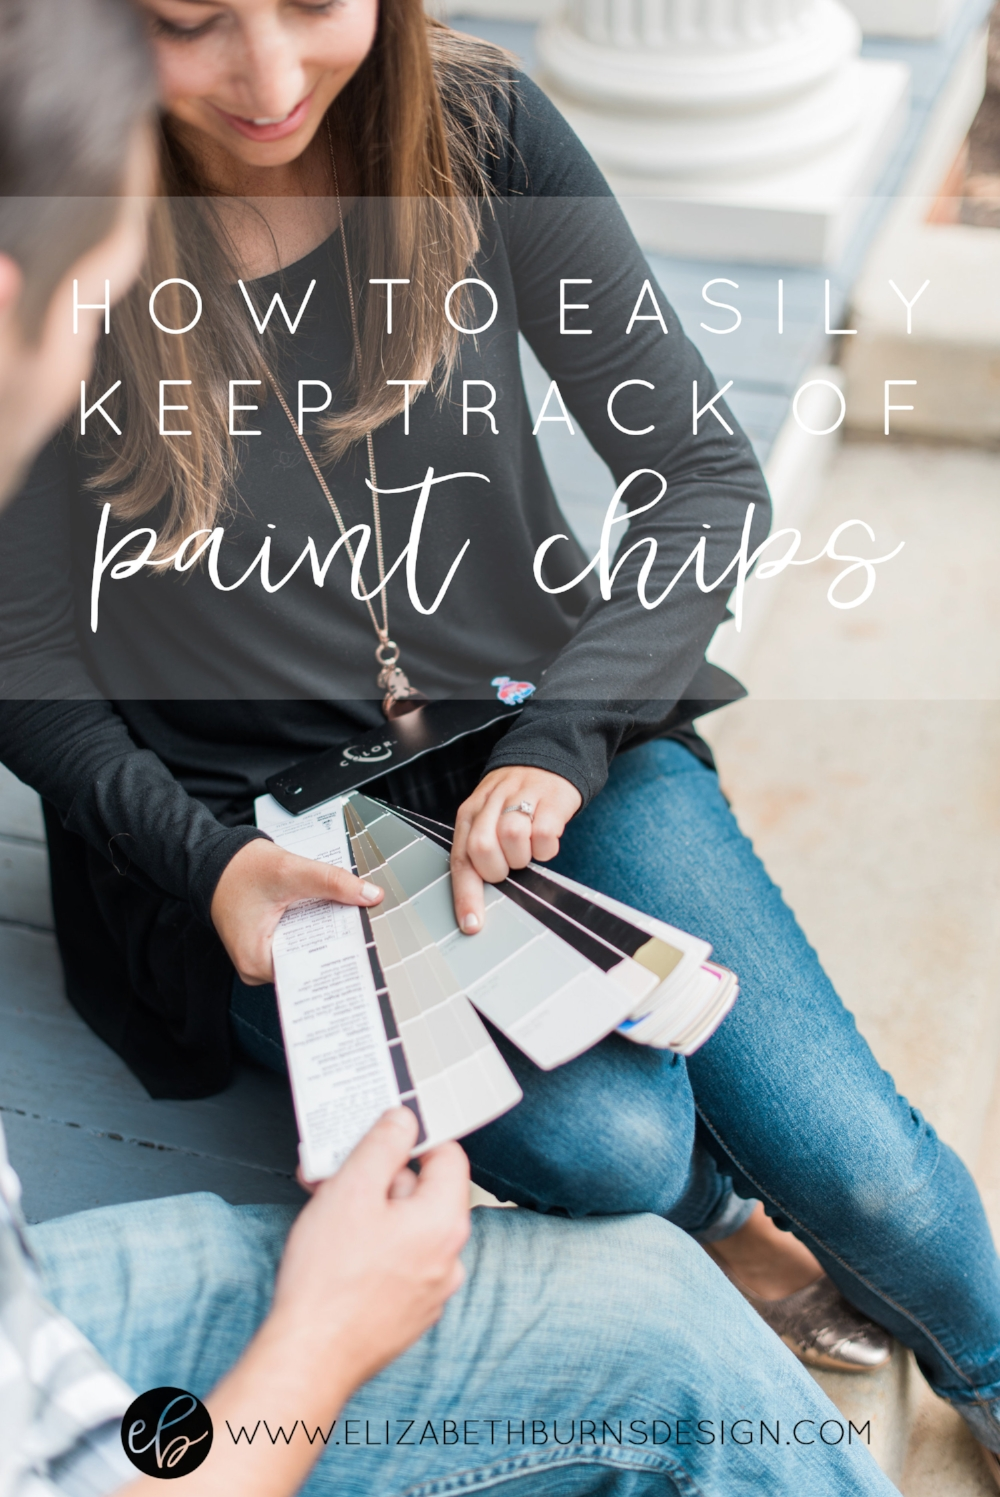 Elizabeth Burns Design | How to Easily Keep Track of Paint Chips and Swatches for Your Home's Paint Colors